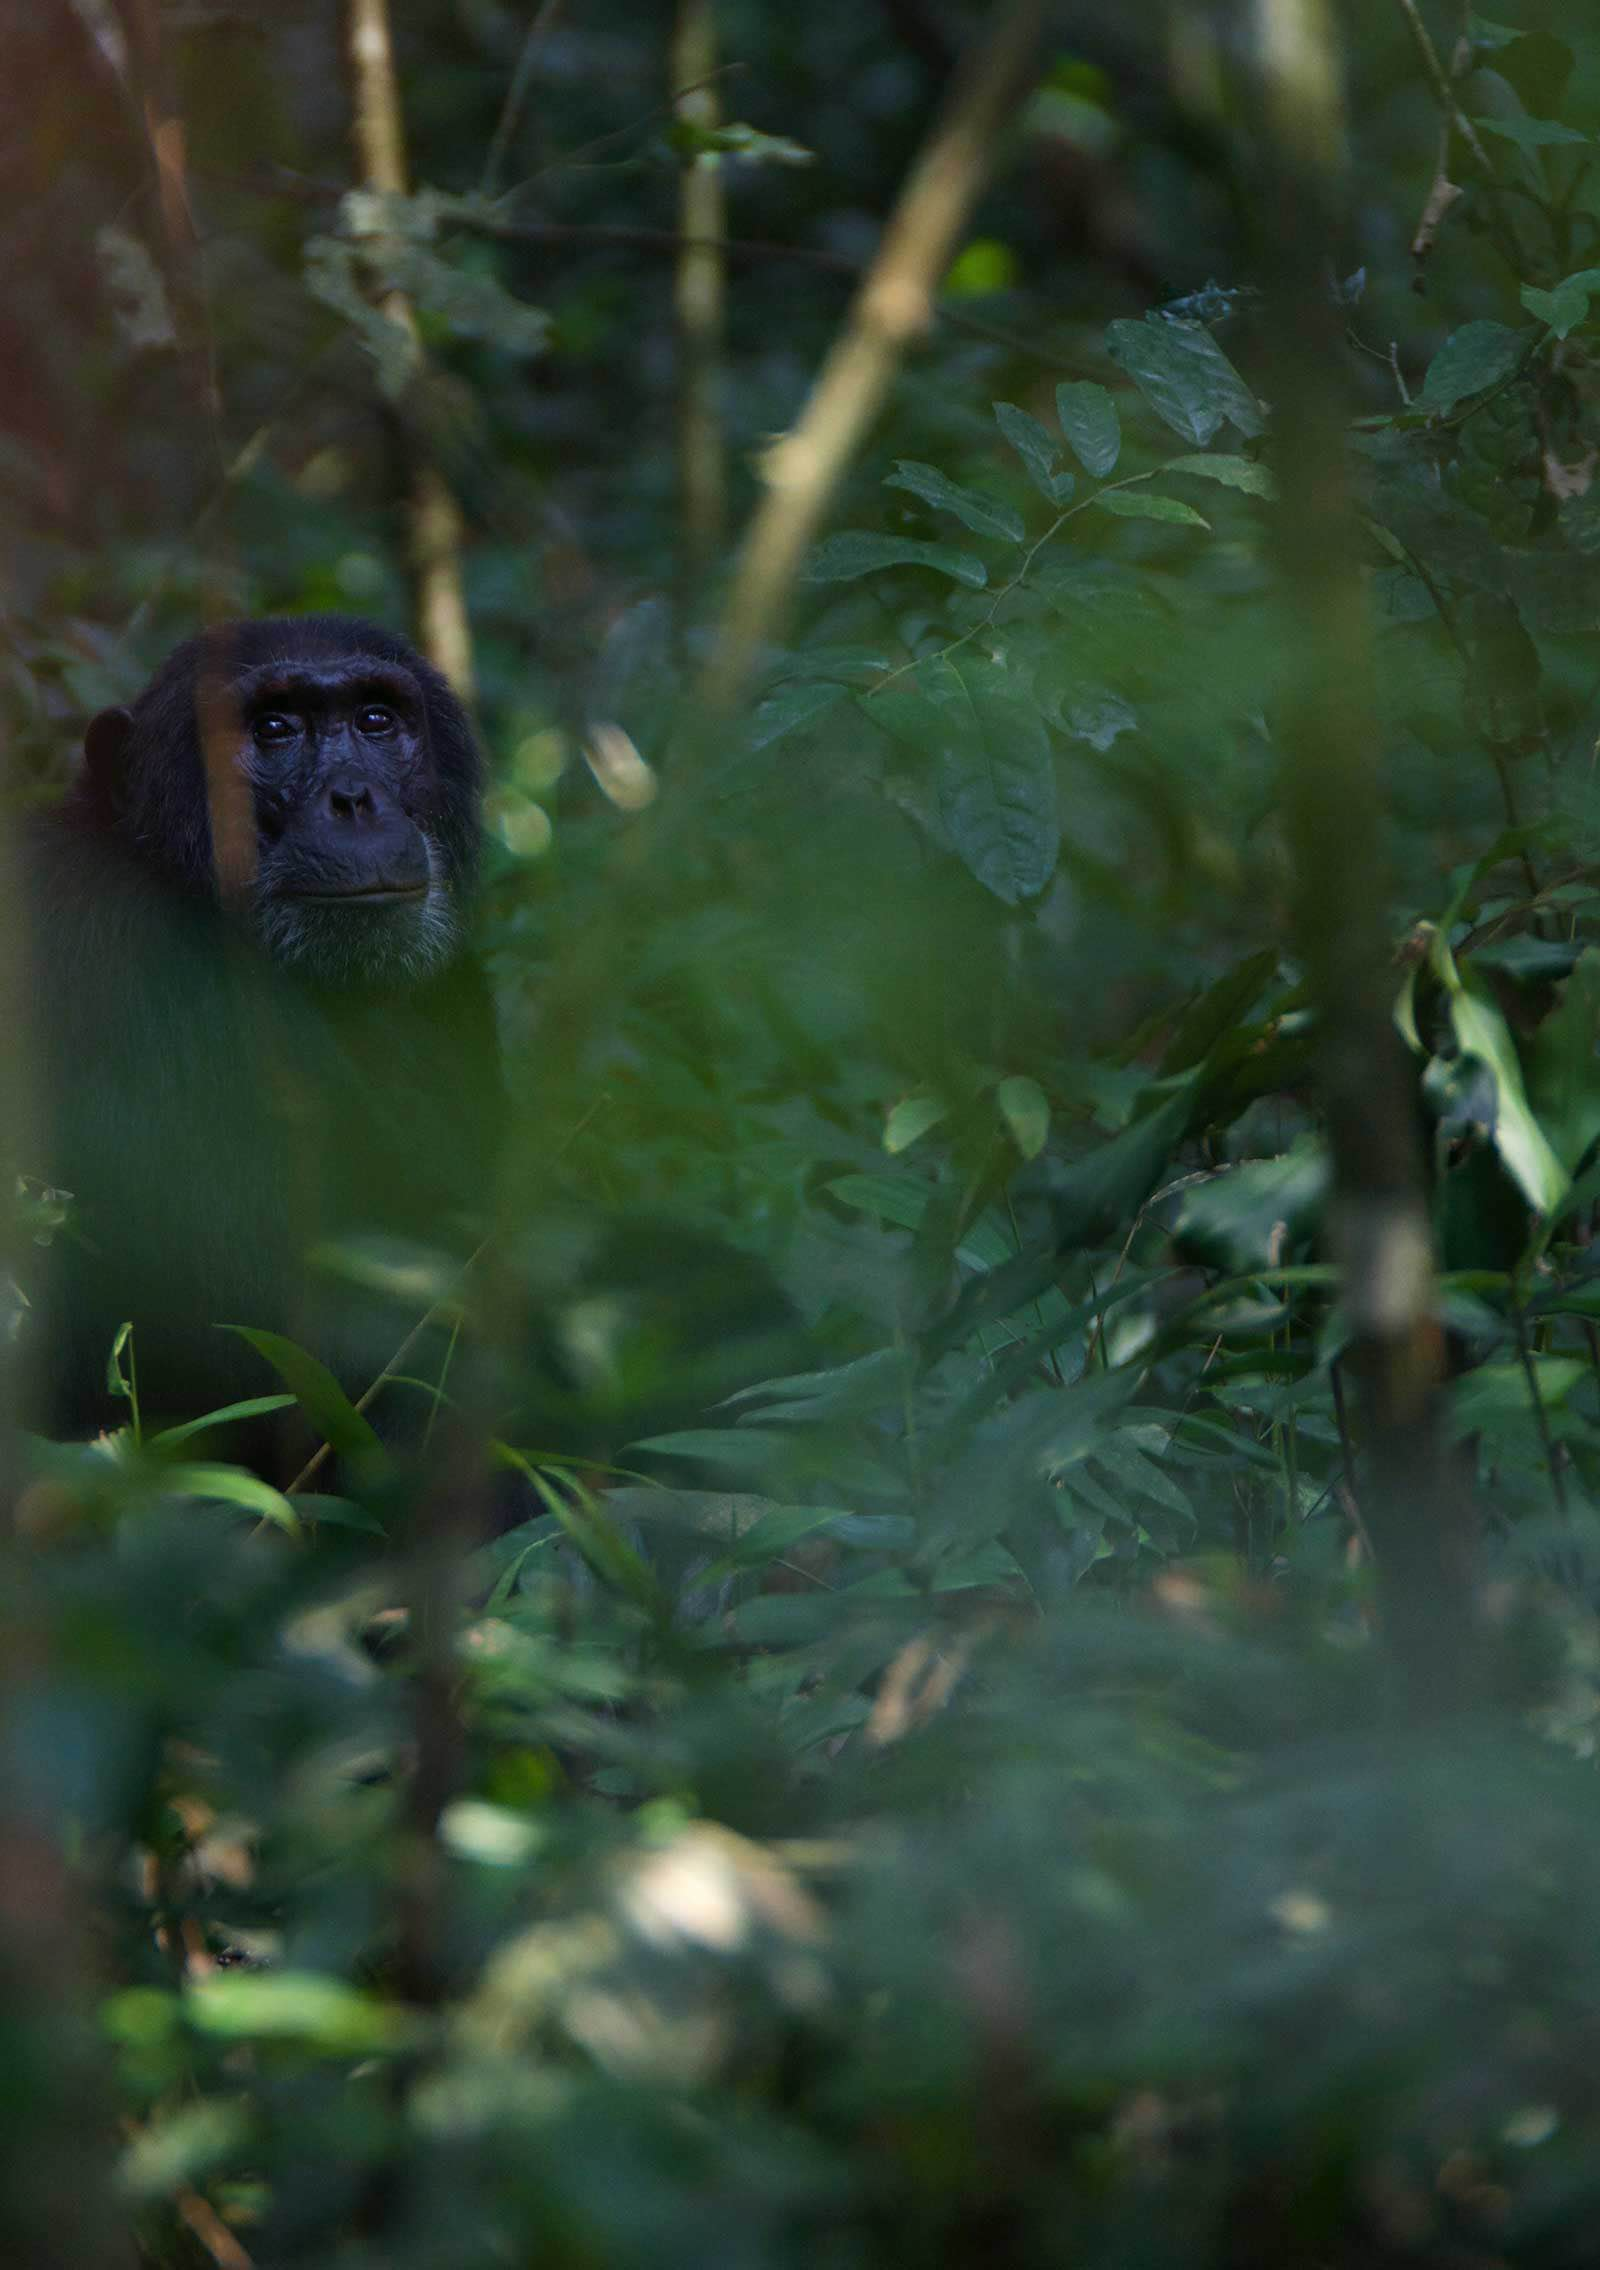 A flourishing forest environment is ideal for the chimpanzees, which is why these habitats need to be protected